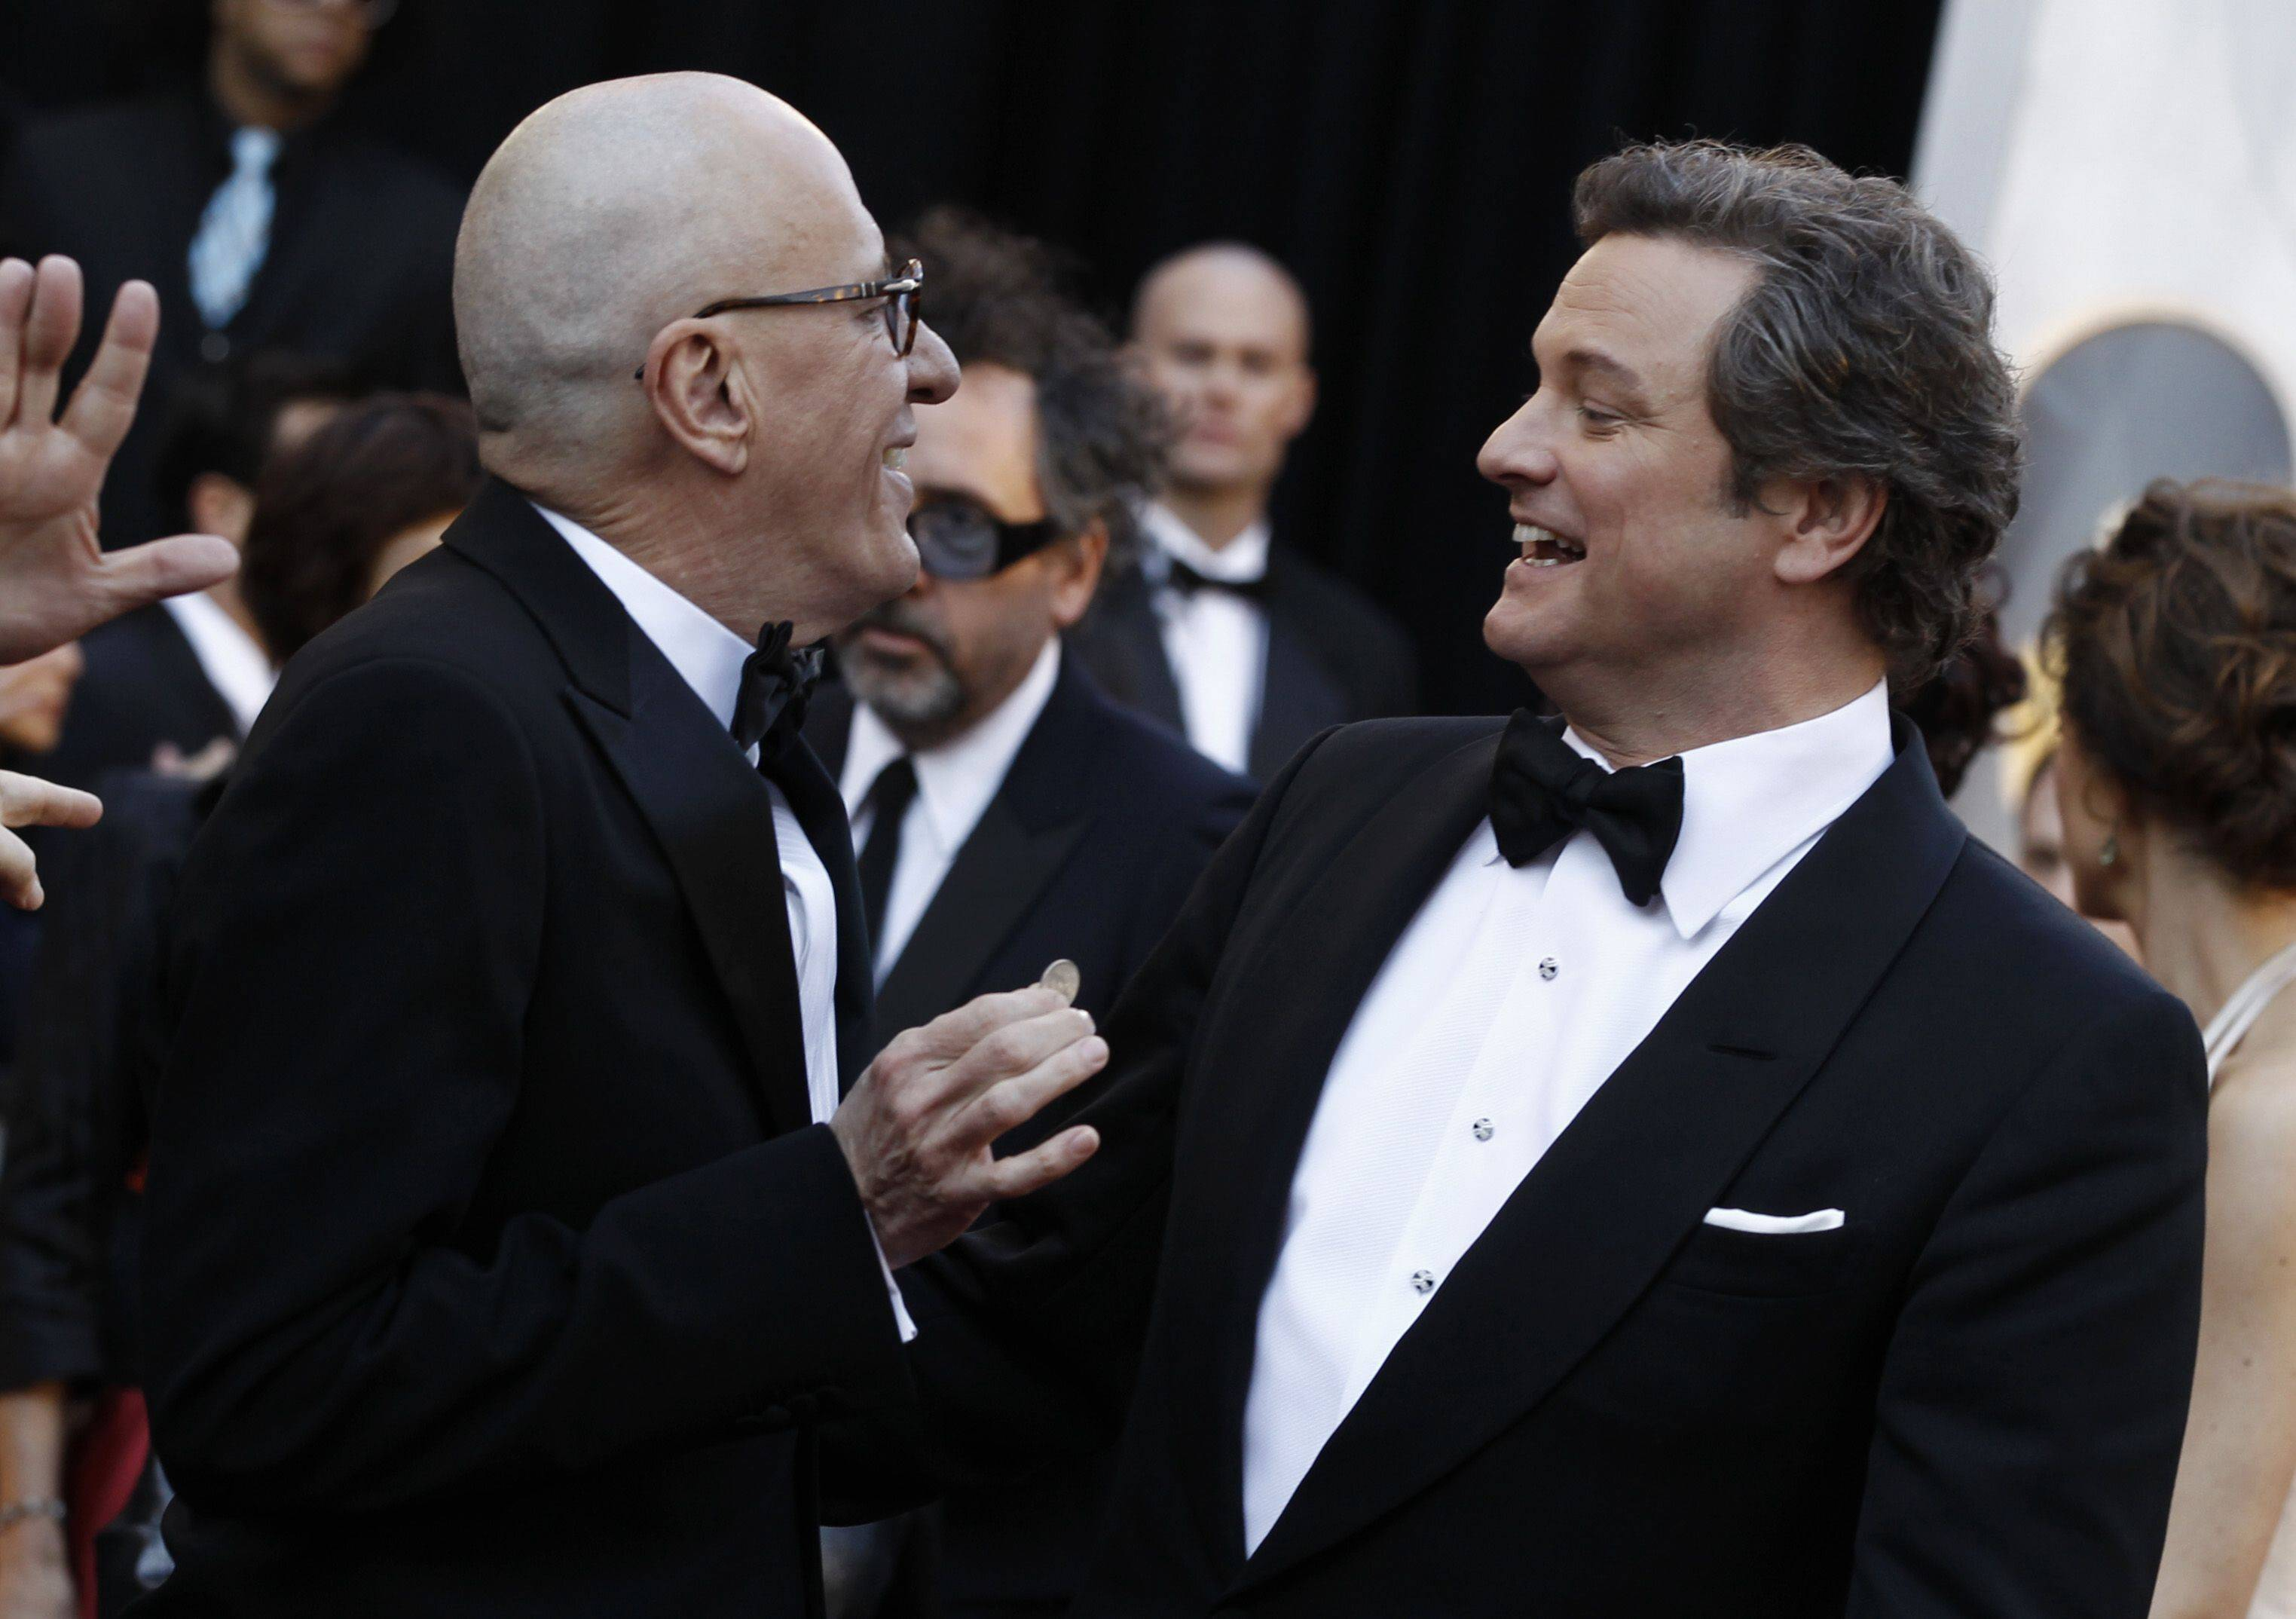 Associated PressActors Geoffrey Rush, left, and Colin Firth talk on the red carpet as they arrive.